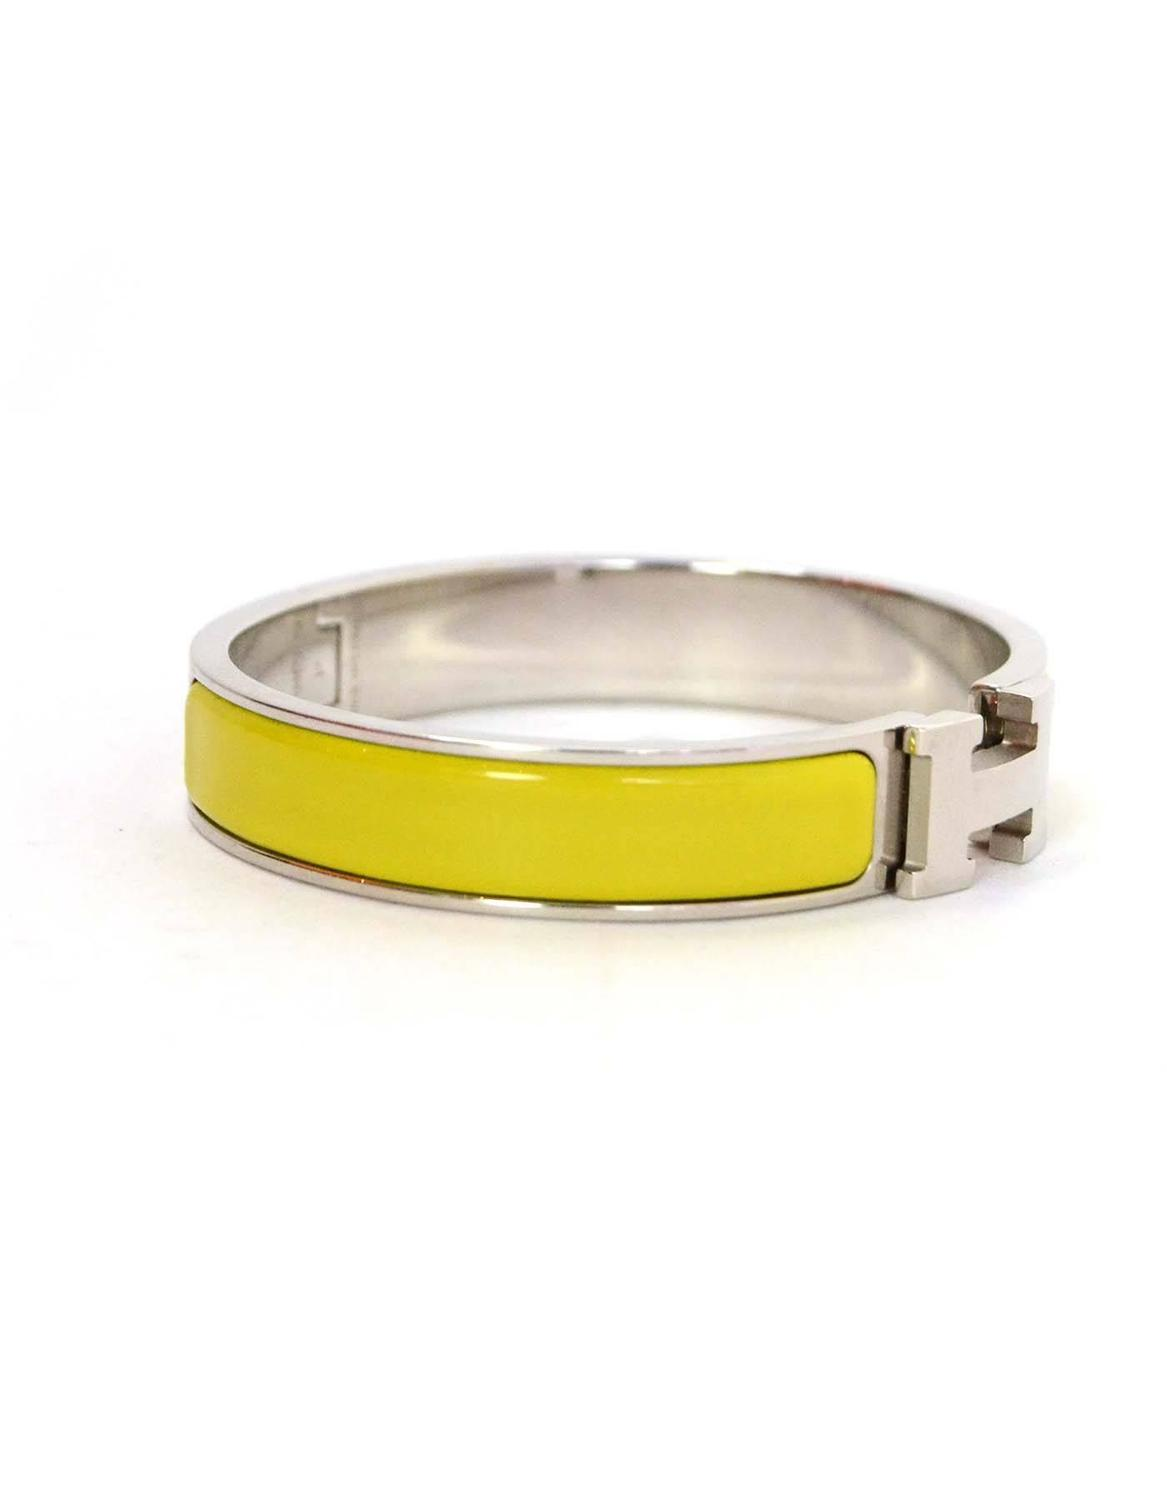 hermes yellow enamel narrow h clic clac gm bracelet cuff for sale at 1stdibs